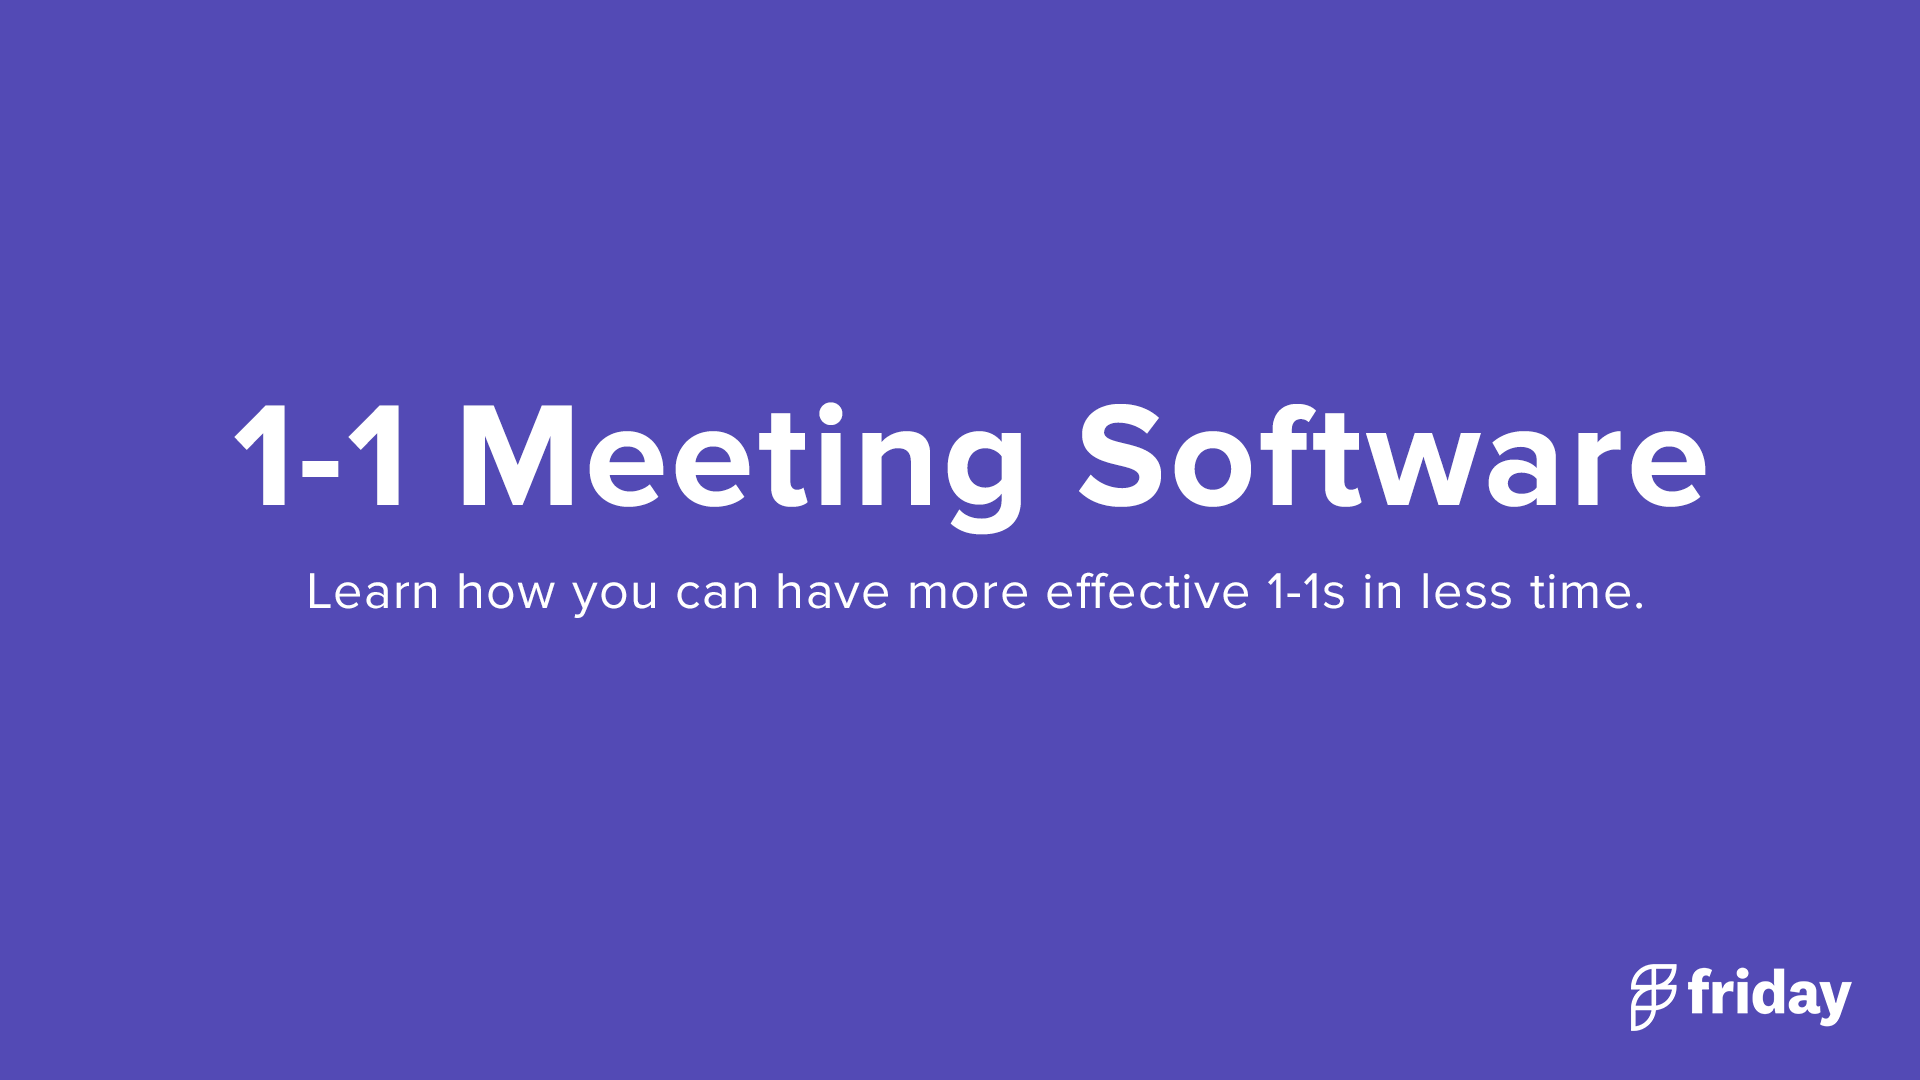 1-1 Meeting Software